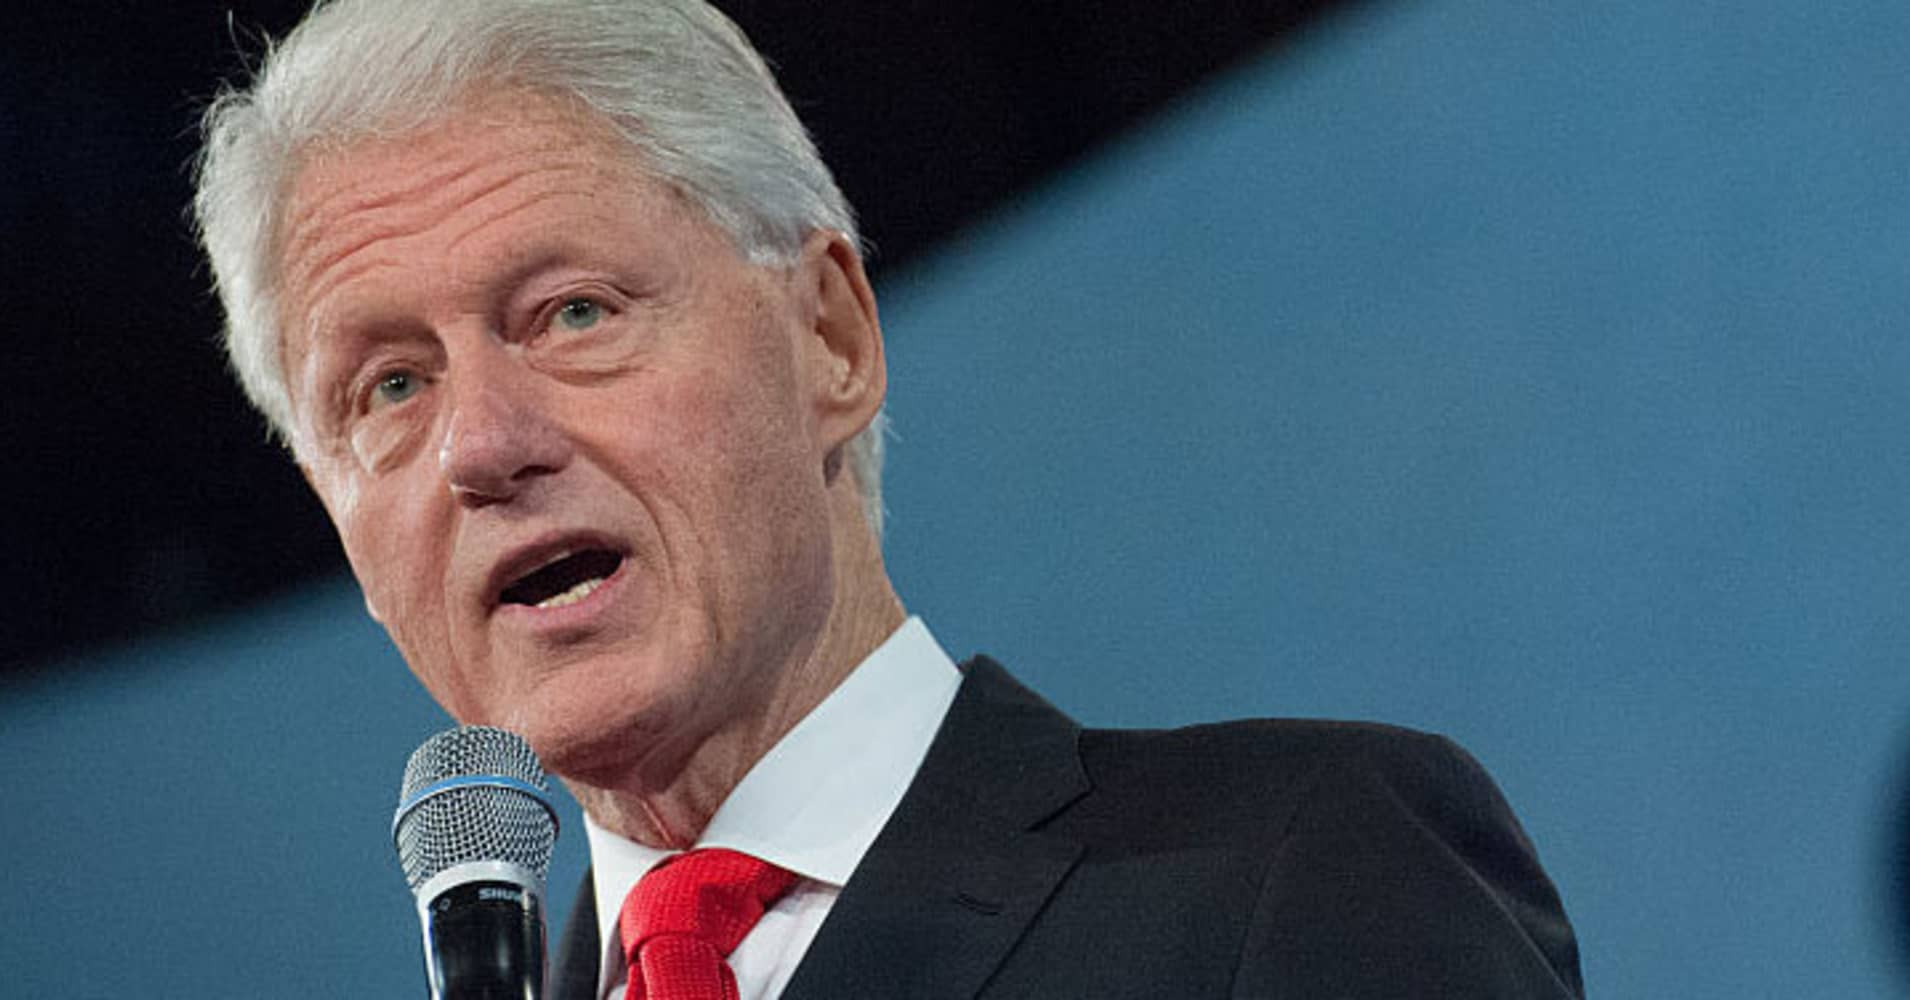 Bill Clinton blasts suggestion of misuse of foundation funds, calling it a 'personal insult'